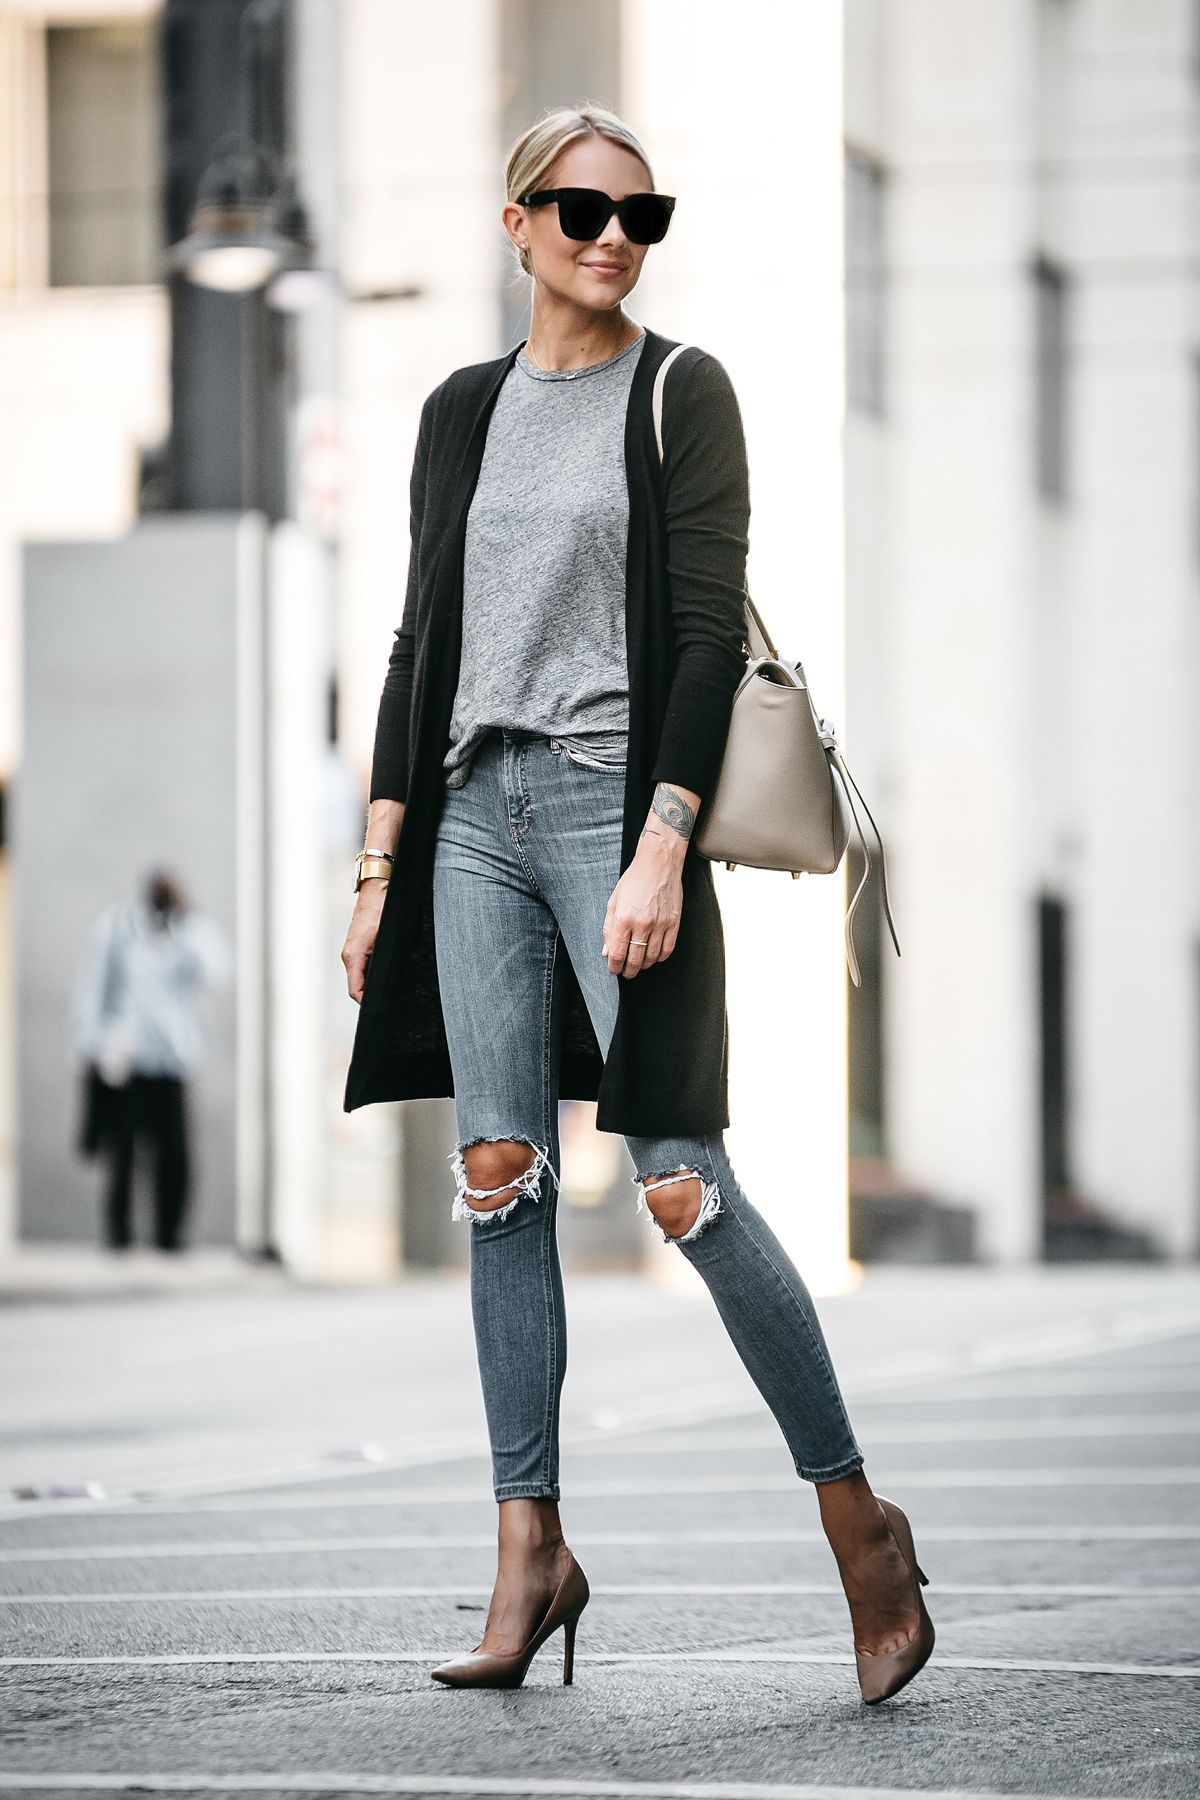 72445f5387 Blonde Woman Wearing Long Black Cardigan Grey Tshirt Topshop Ripped Skinny  Jeans Nude Pumps Outfit Celine Belt Bag Fashion Jackson Dallas Blogger  Fashion ...